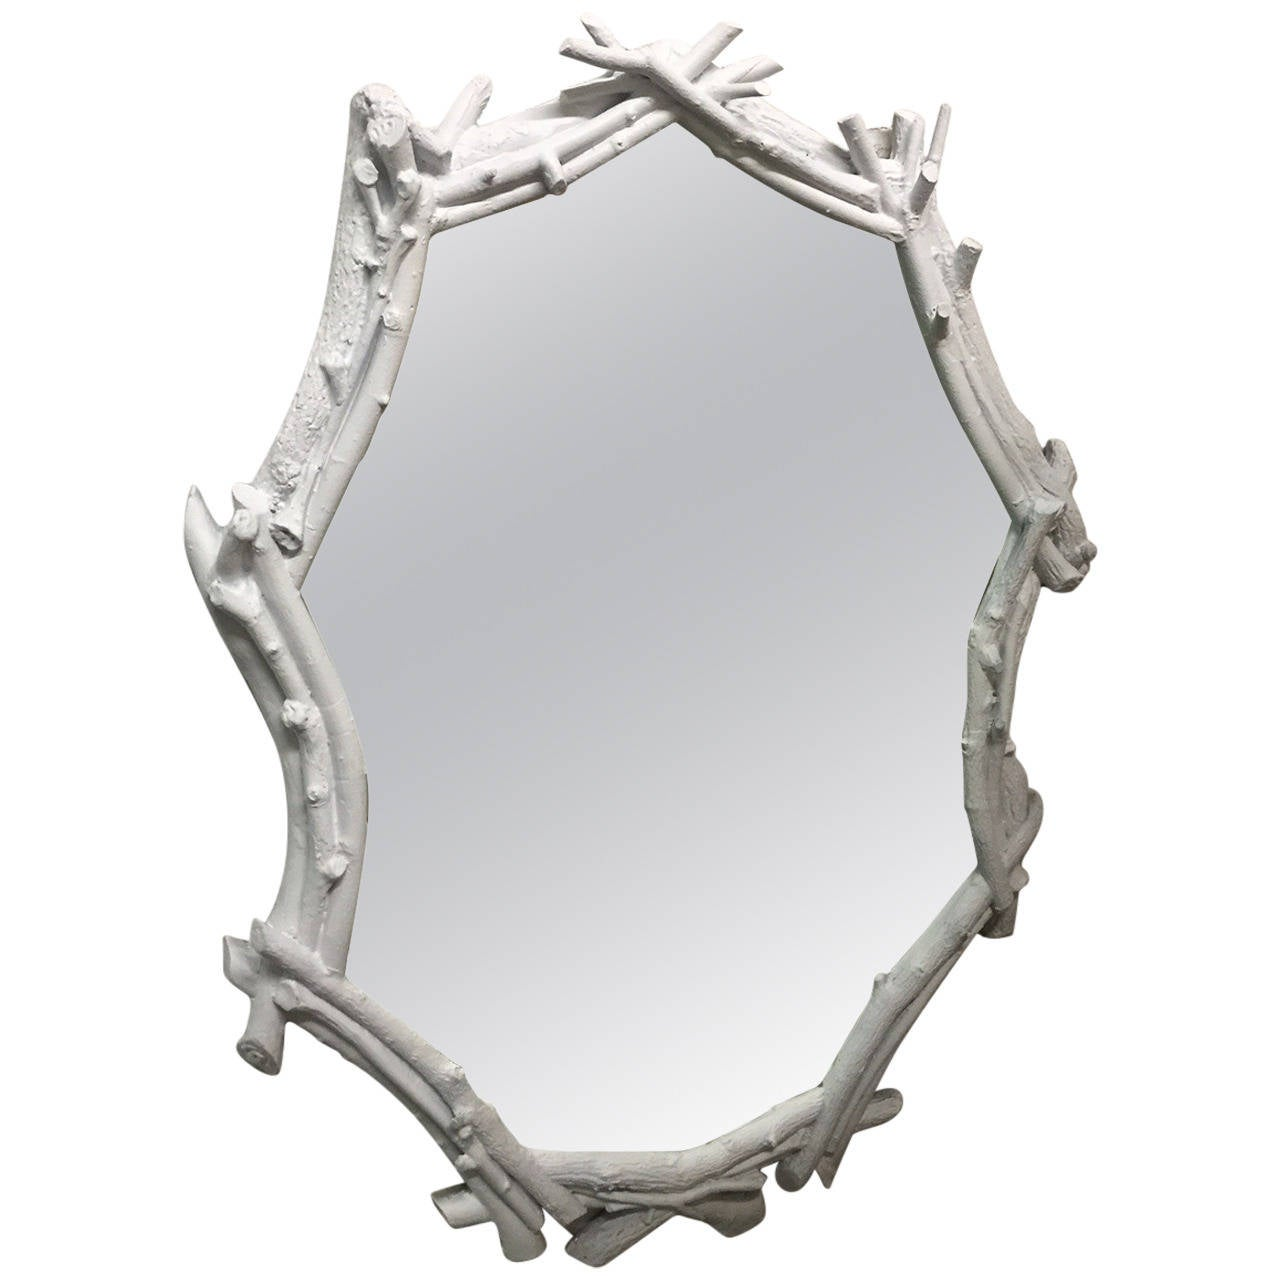 White Plaster Twig Mirror For Sale at 1stdibs